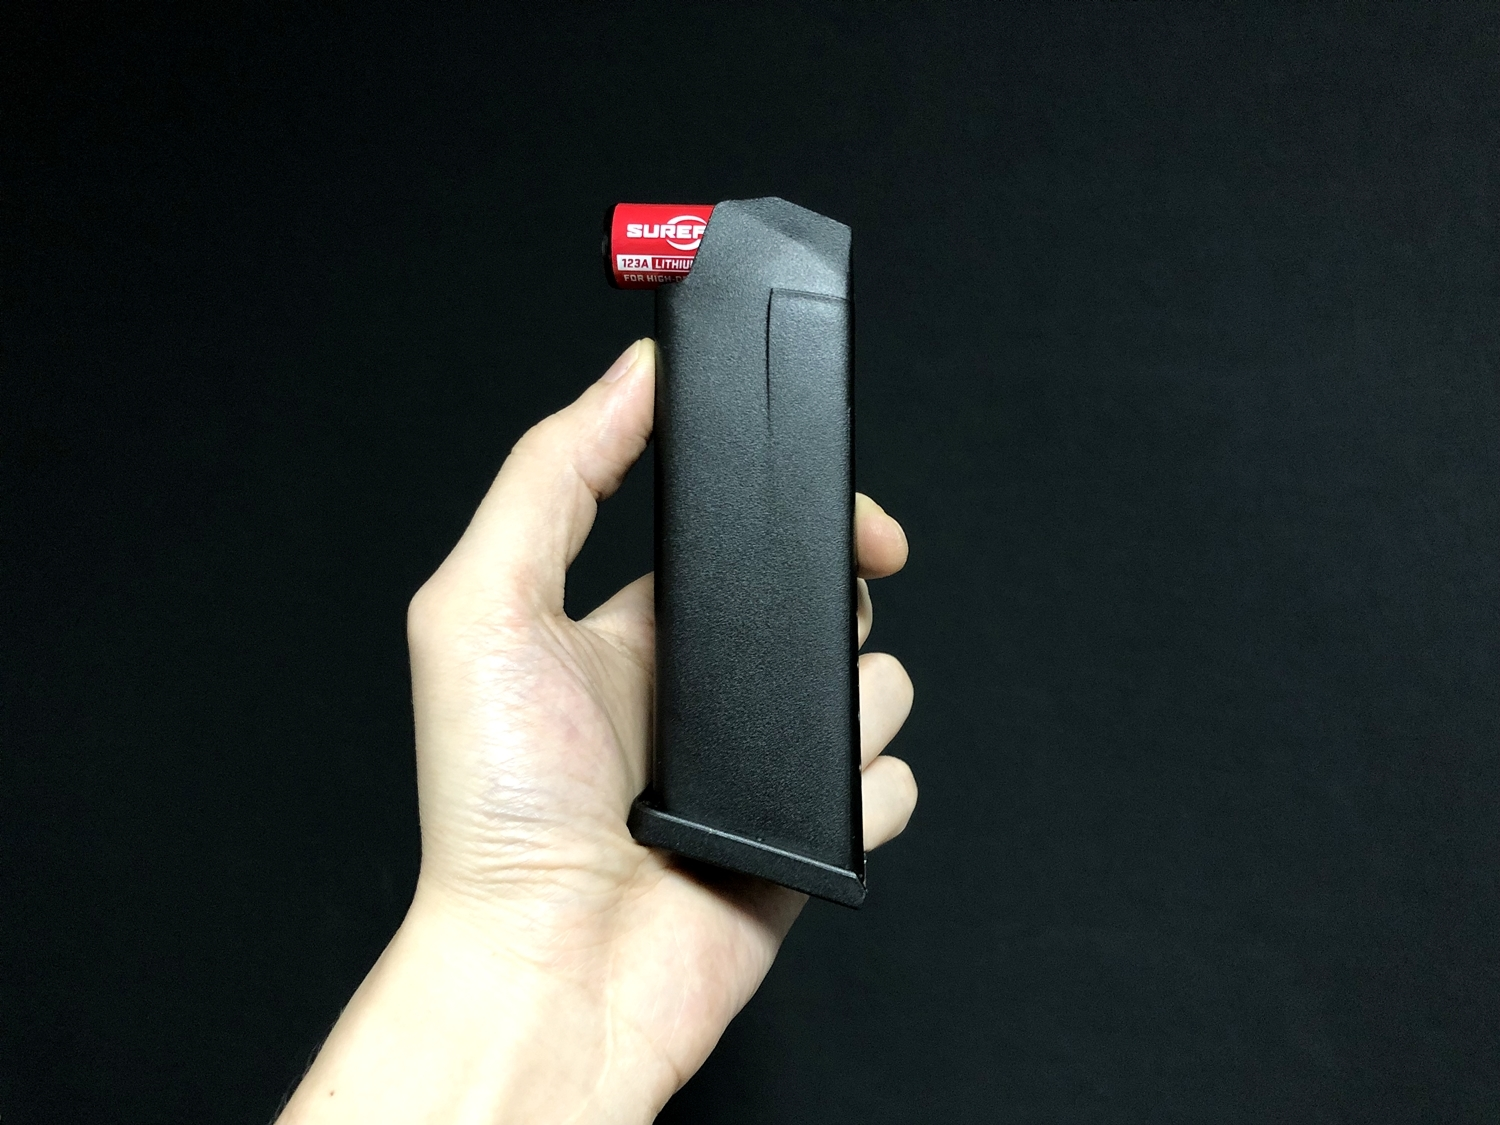 0 TMC GLOCK MAGAZINE STYLE CR123A BATTERY CASE グロック マガジン スタイル 電池ケース SUREFIRE SF123A 純正電池!! 購入 開封 取付 レビュー!!